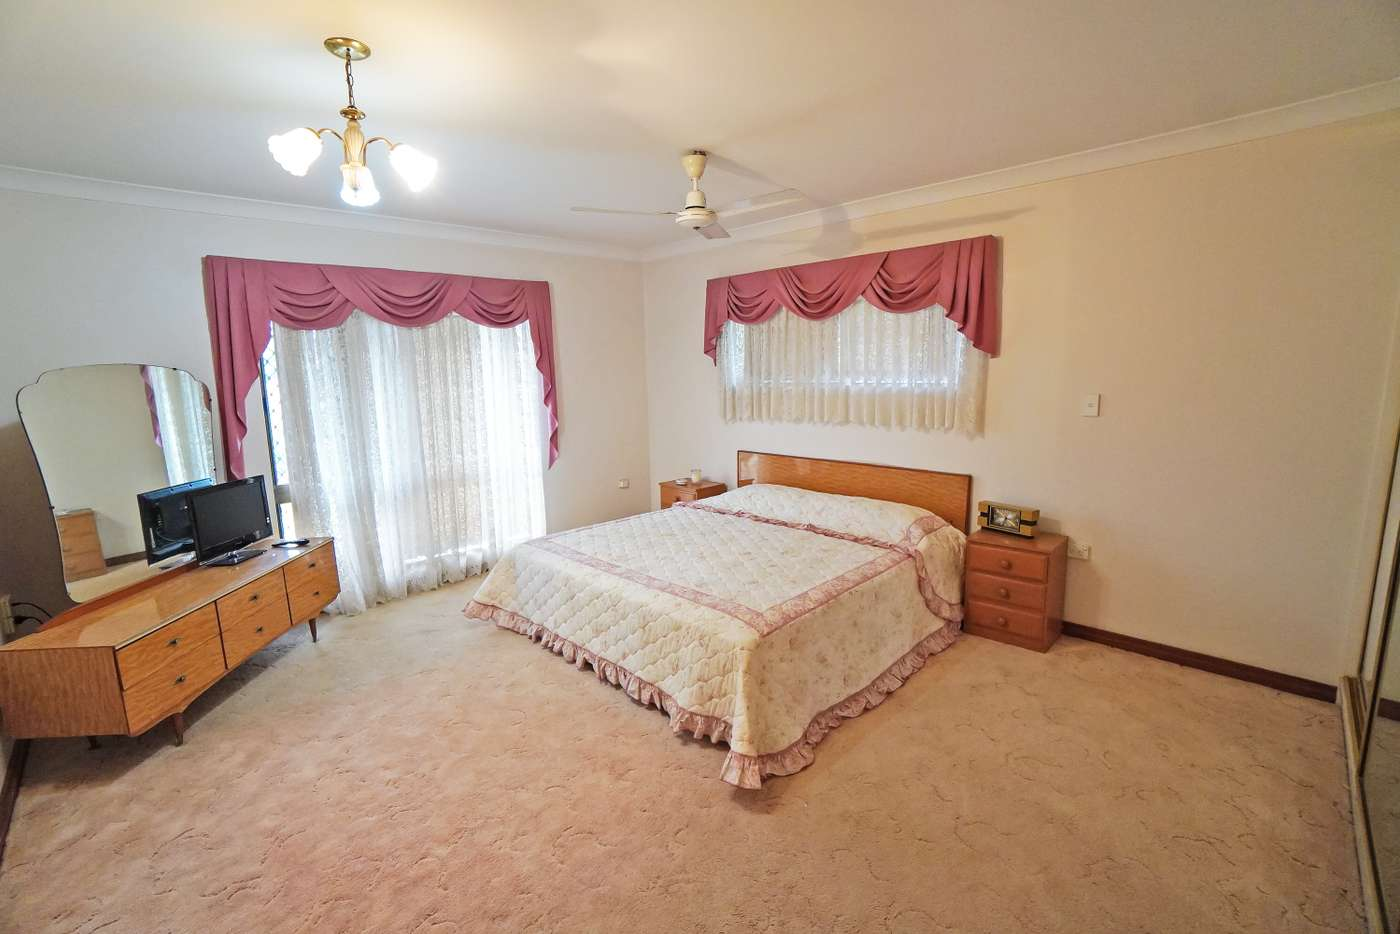 Sixth view of Homely house listing, 6 Myrteza Drive, Mareeba QLD 4880